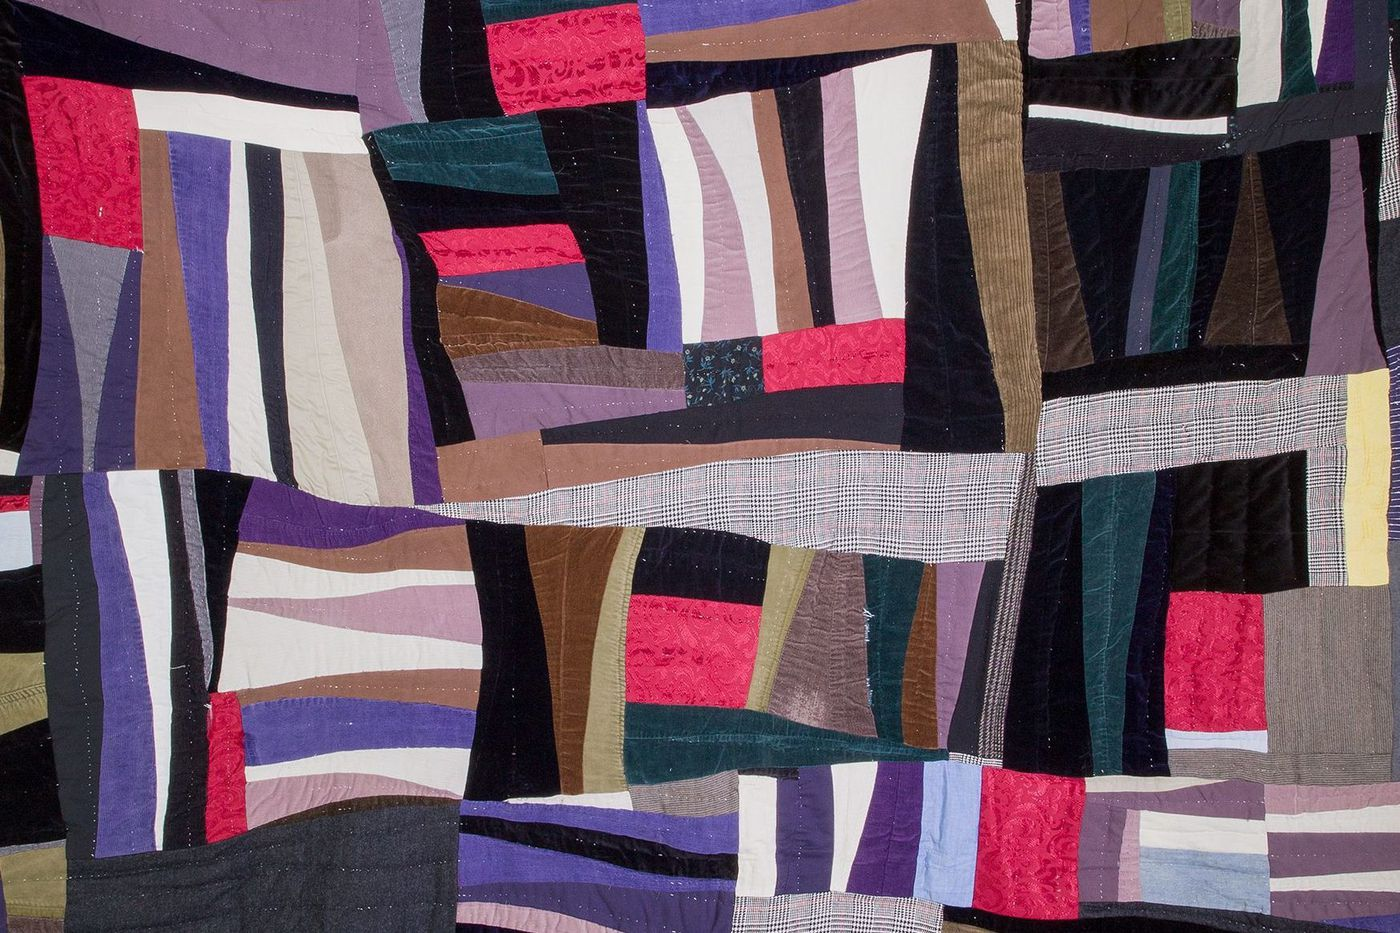 Philadelphia art galleries in fall 2018: a Gee's Bend quilter and more to see